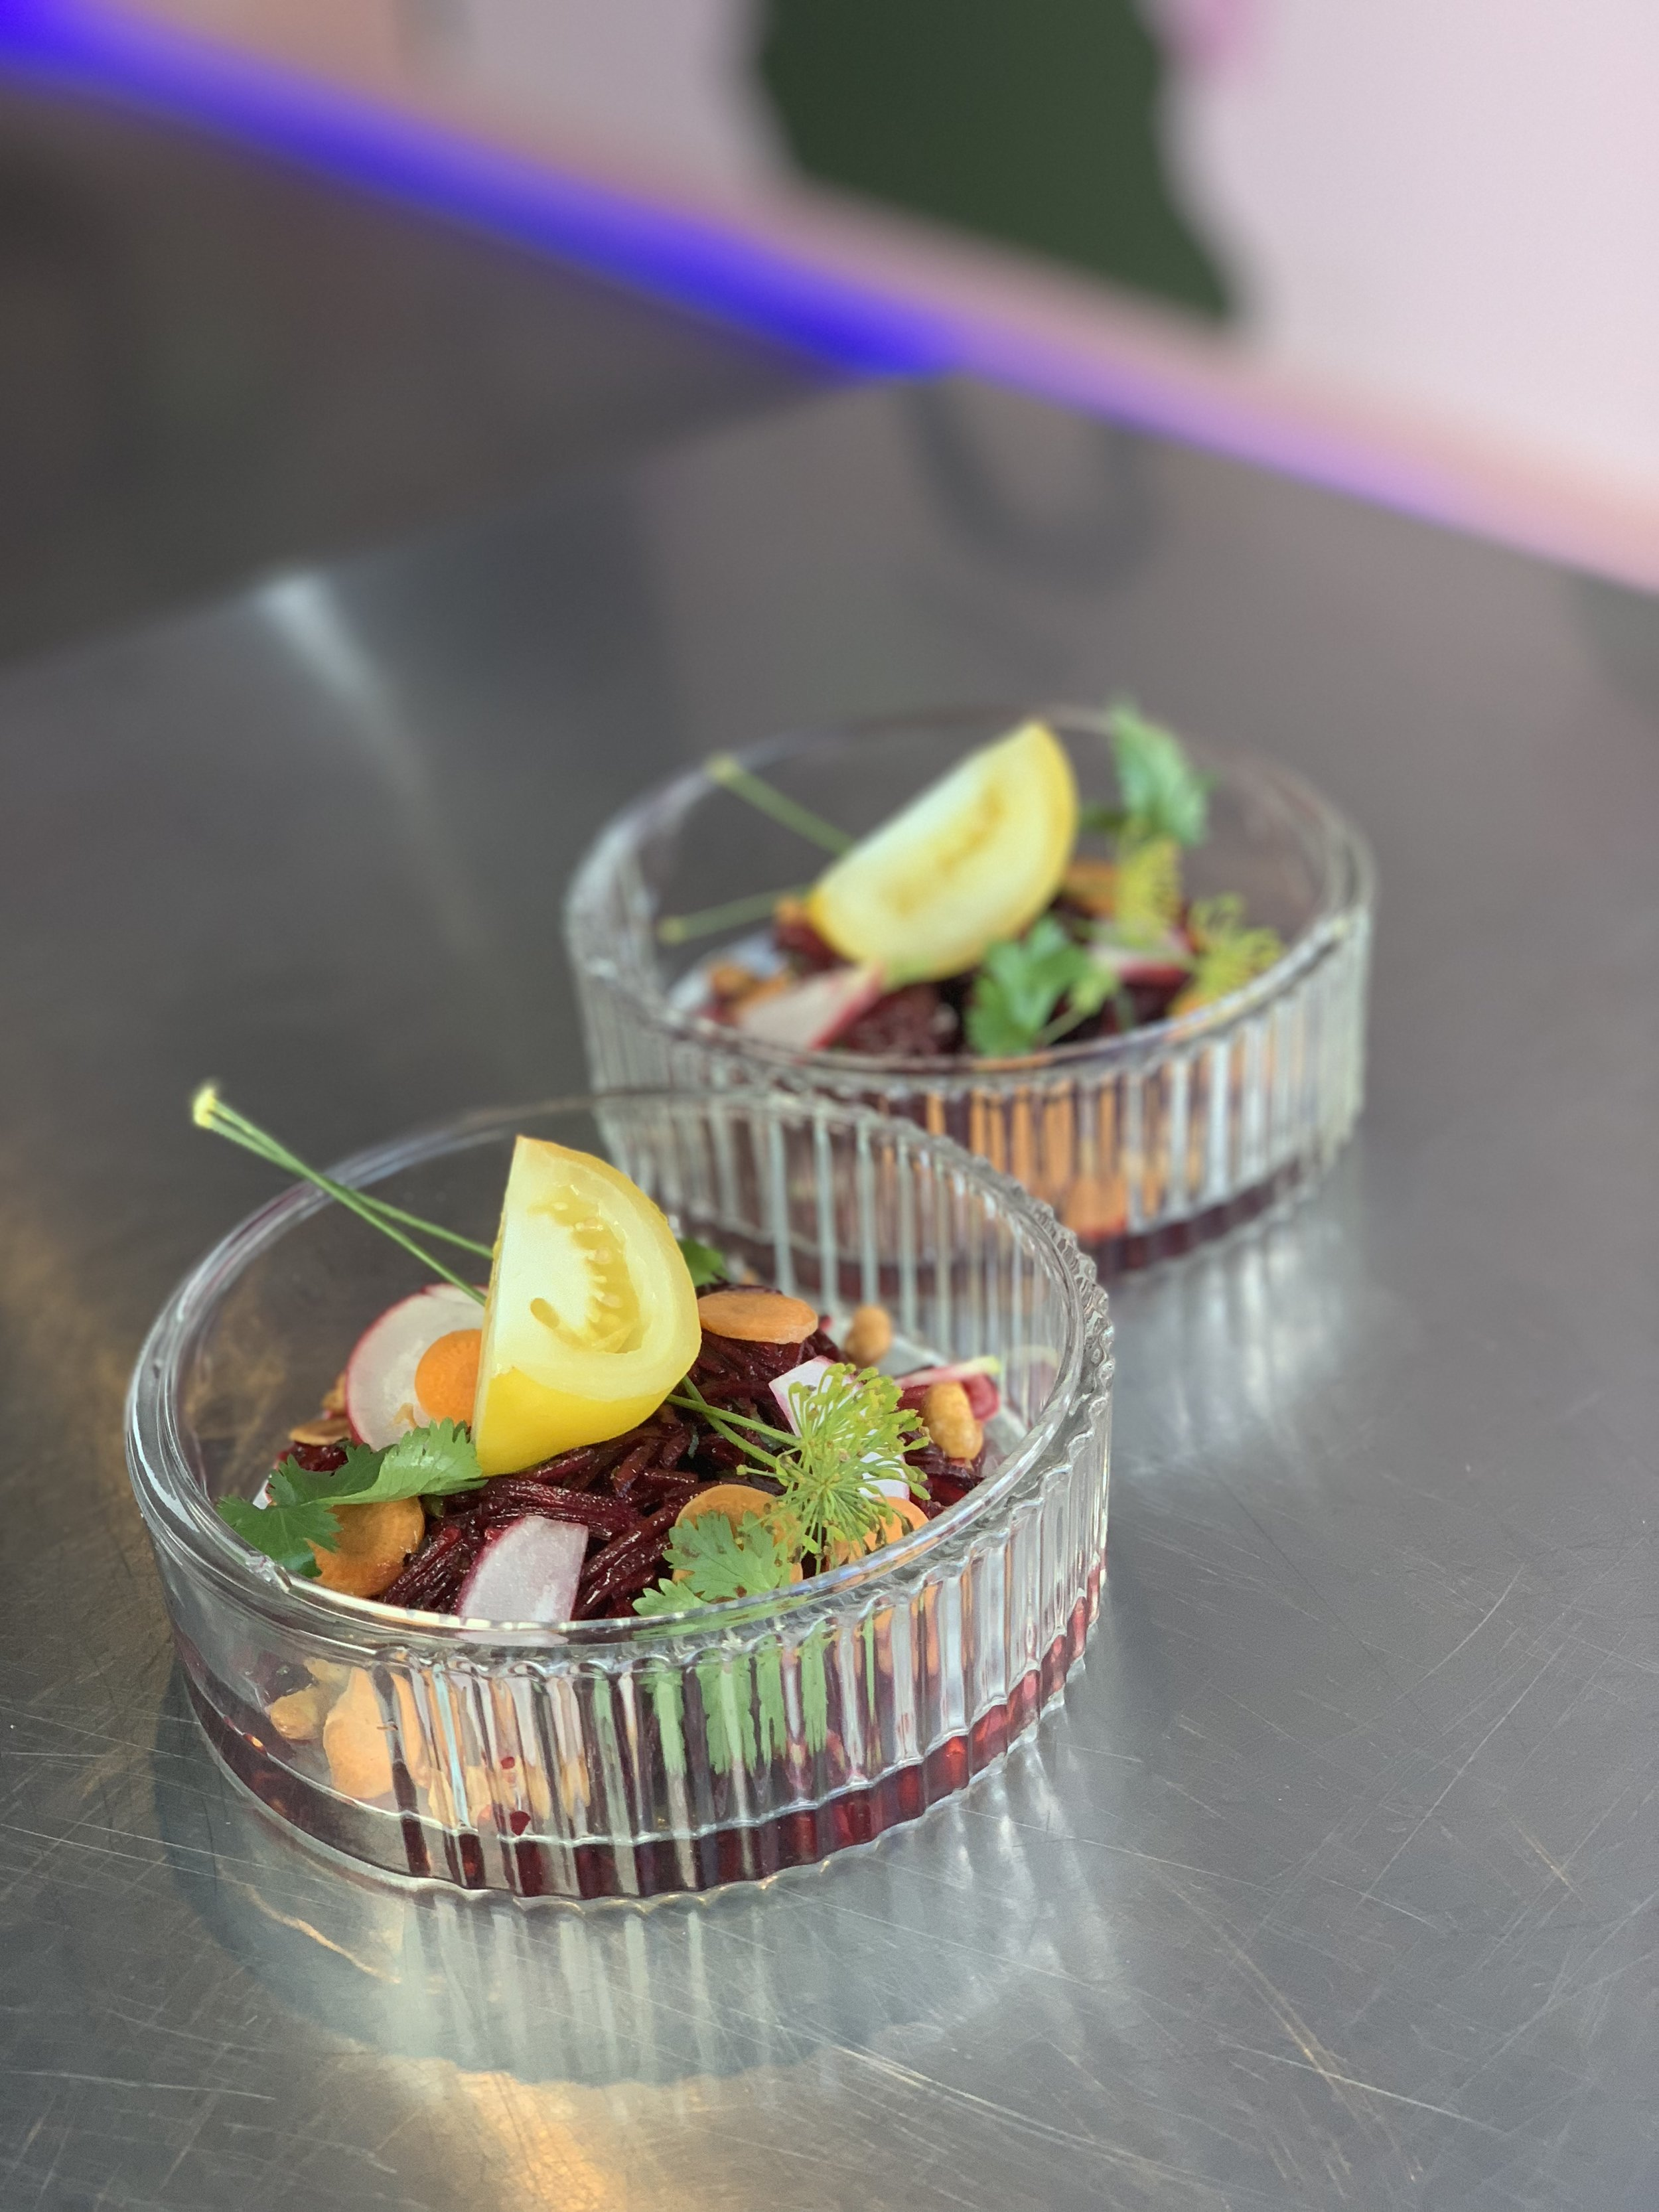 Beetroot and green apple tossed with chilli oil and Chinese vinegar